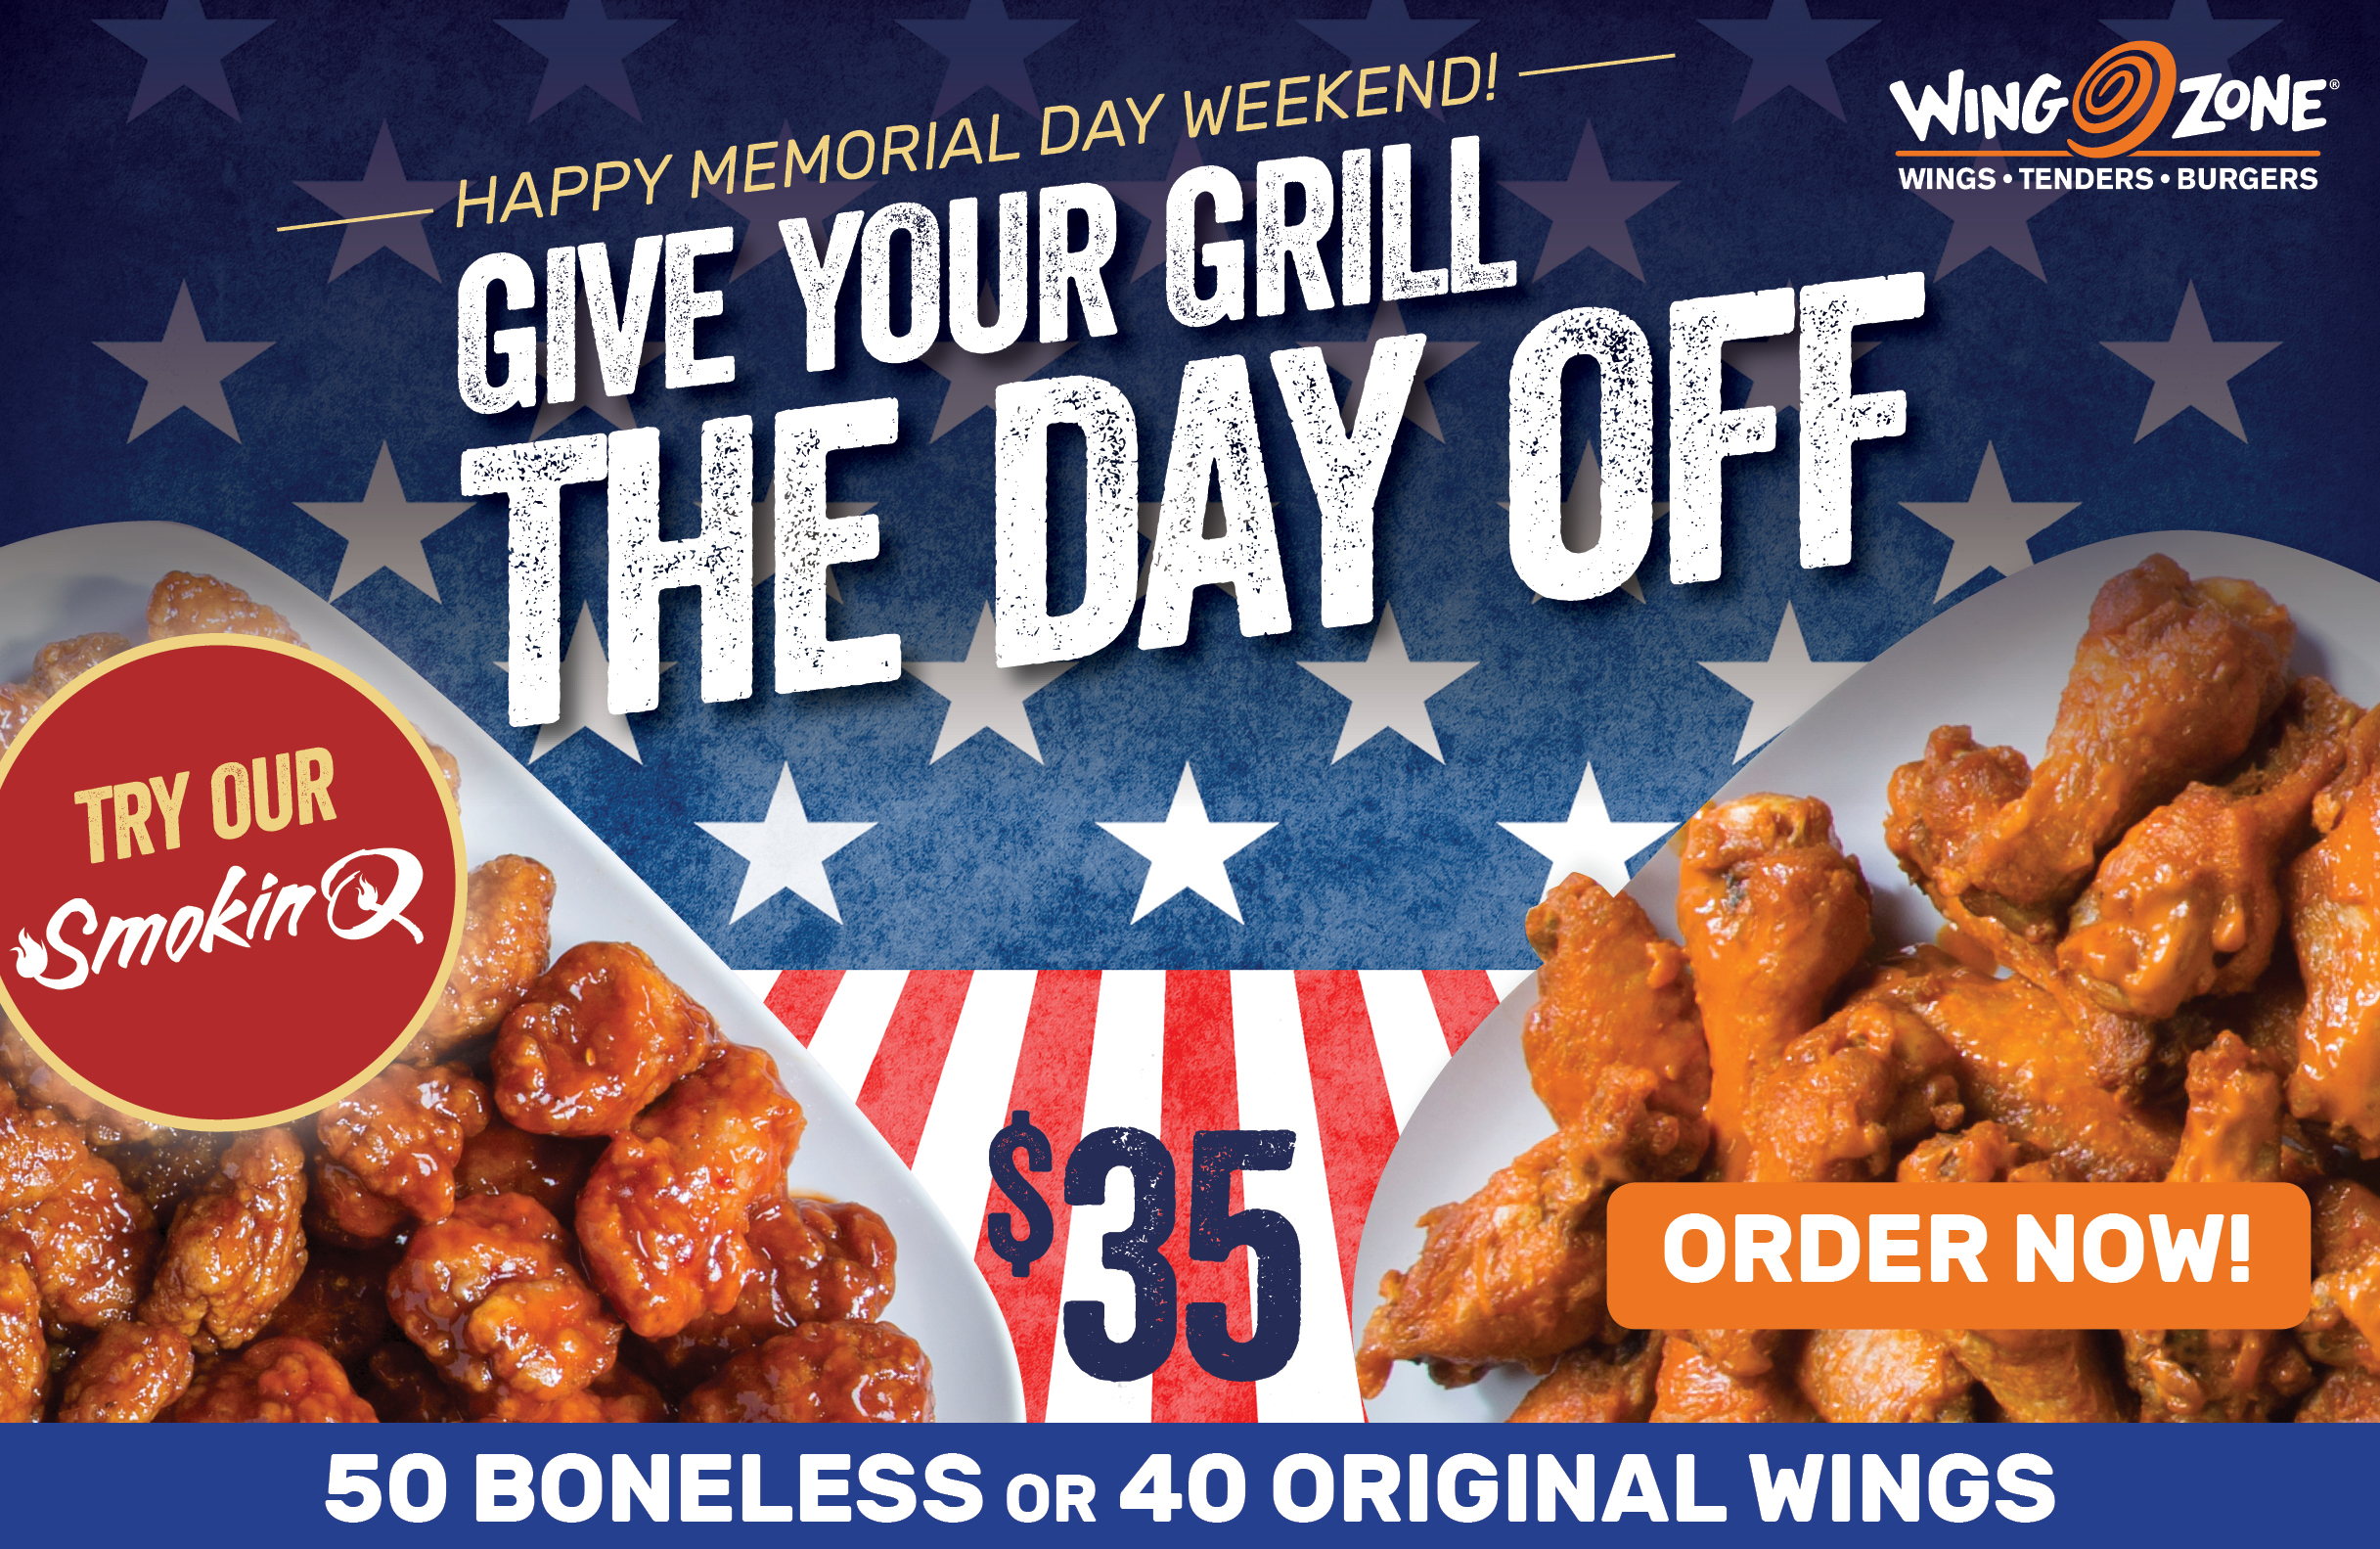 Happy Memorial Day Weekend! Celebrate with 50 Boneless or 40 Original Wings for $35